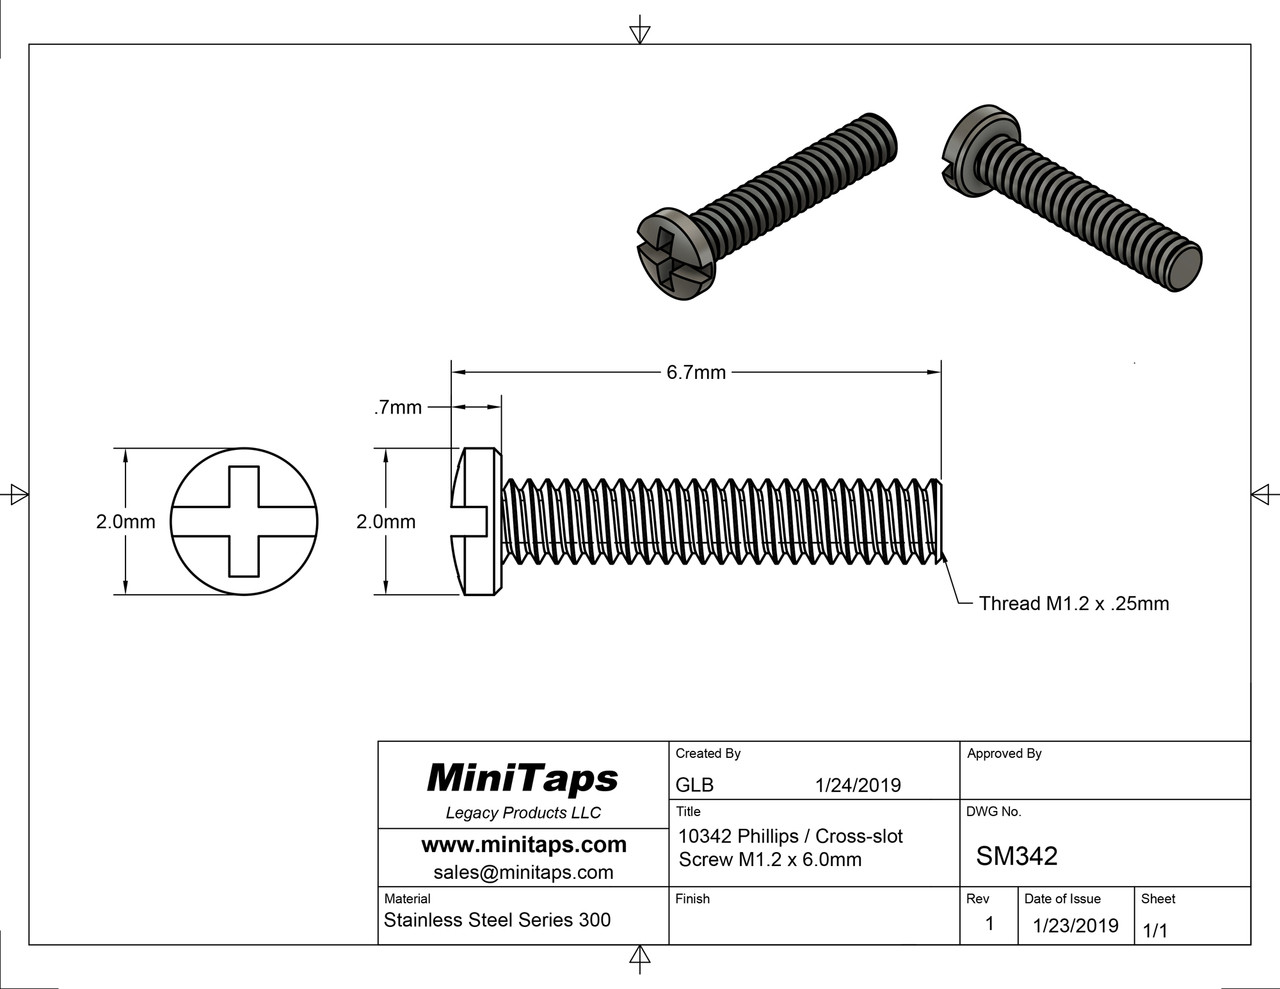 Pan Head Machine Screw with Philips X-Slot Drive Thread M1.2  (1.20UNM) Pitch .25mm Threaded Length 6mm Overall length 6.7mm Stainless Steel Price is for 100 count package